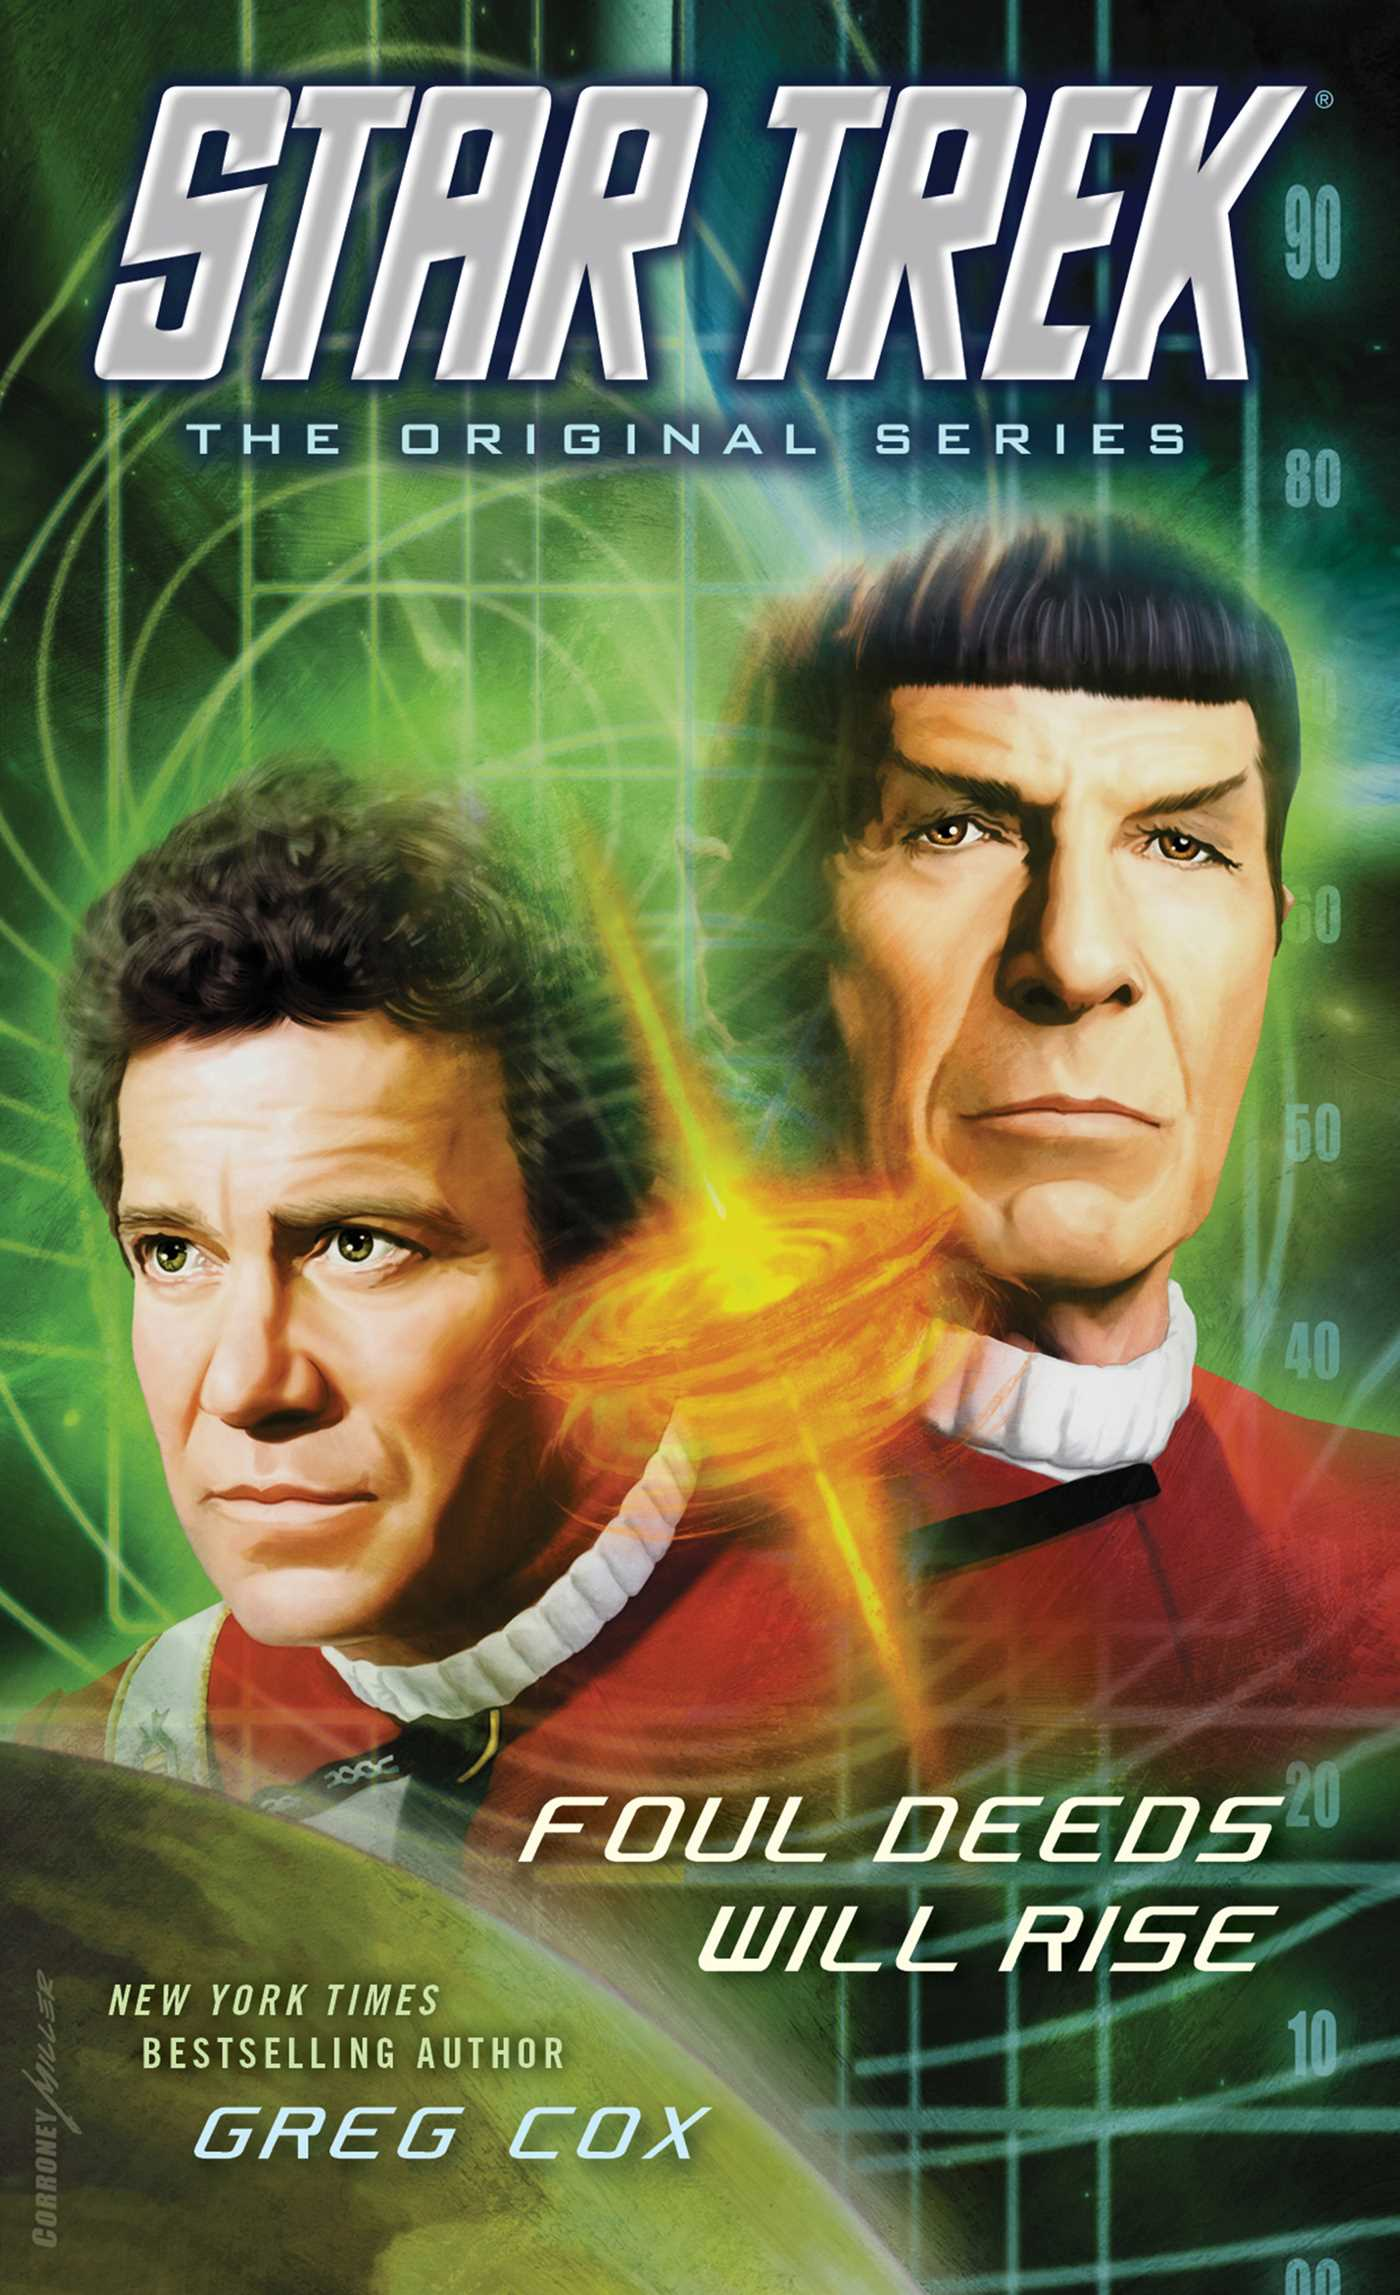 Star-trek-the-original-series-foul-deeds-will-9781476783260_hr